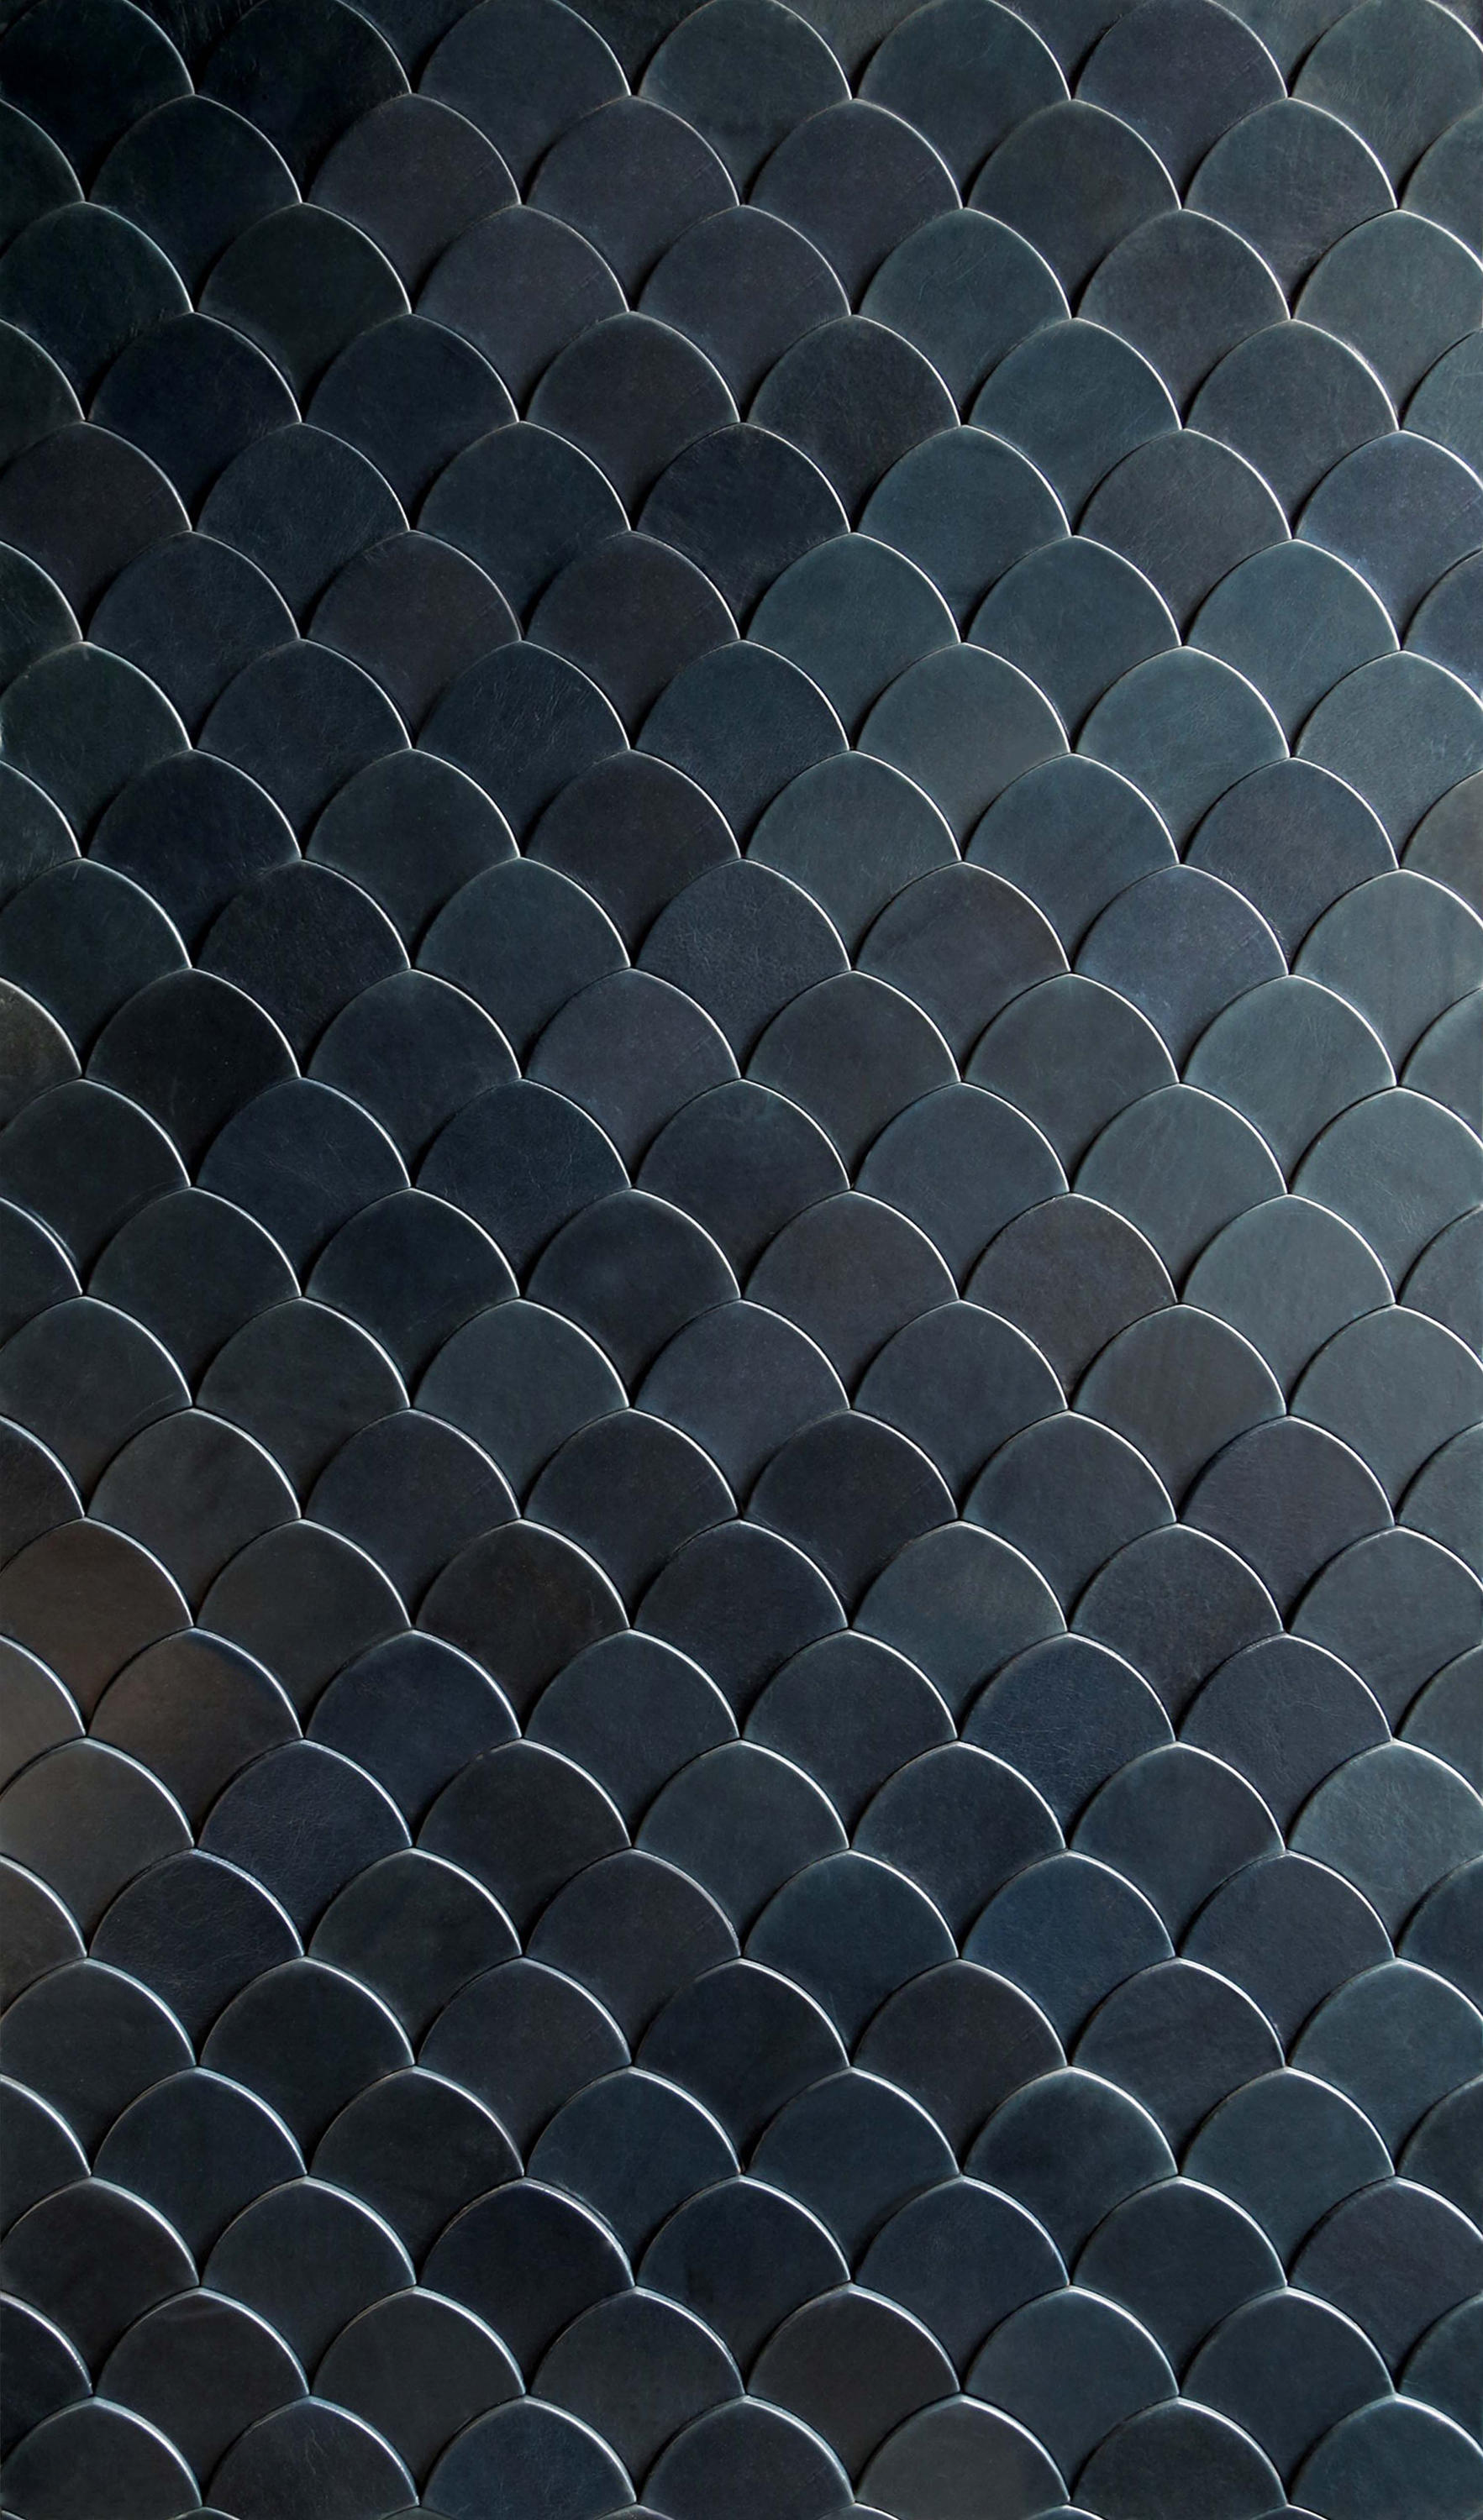 Marque Fishscale Leather Tiles From Pintark Architonic